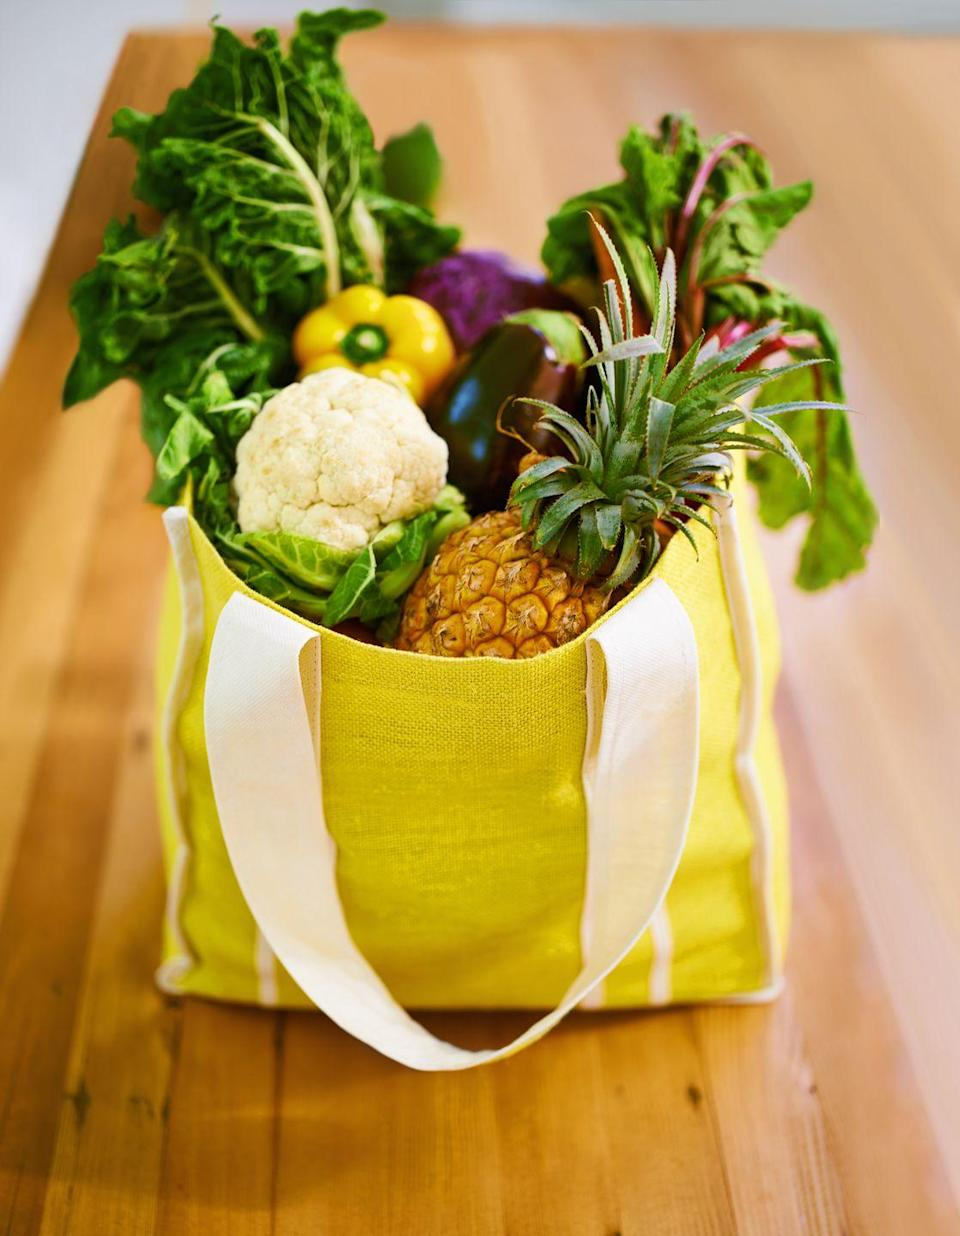 "<p>Reusable grocery bags cut down on wasteful plastic, but they can get grimy with time. Look at the care label on your reusable bags to determine the best way to clean them. If they're not machine-wash safe, clean them thoroughly with a sponge or cloth dipped in sudsy water. Rinse with a clean cloth and let air dry.</p><p><strong>RELATED: </strong><a href=""https://www.goodhousekeeping.com/home-products/g30778245/best-reusable-grocery-bags/"" rel=""nofollow noopener"" target=""_blank"" data-ylk=""slk:The Best Reusable Bags You Can Buy"" class=""link rapid-noclick-resp"">The Best Reusable Bags You Can Buy </a></p>"